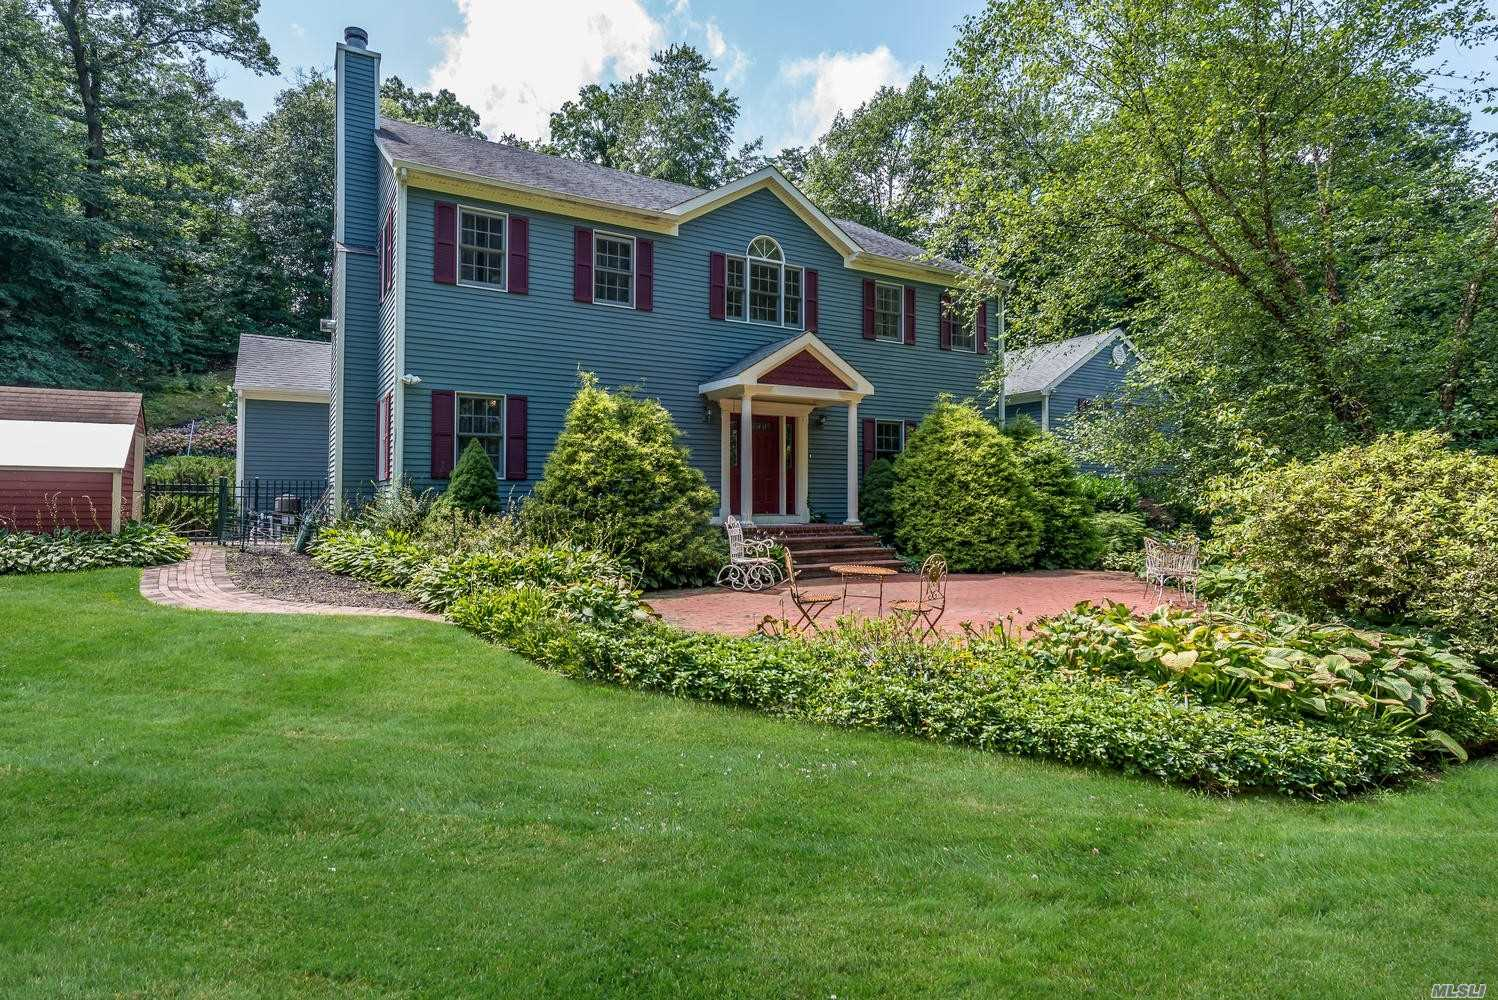 Photo of home for sale at 147 Cove Rd, Oyster Bay Cove NY